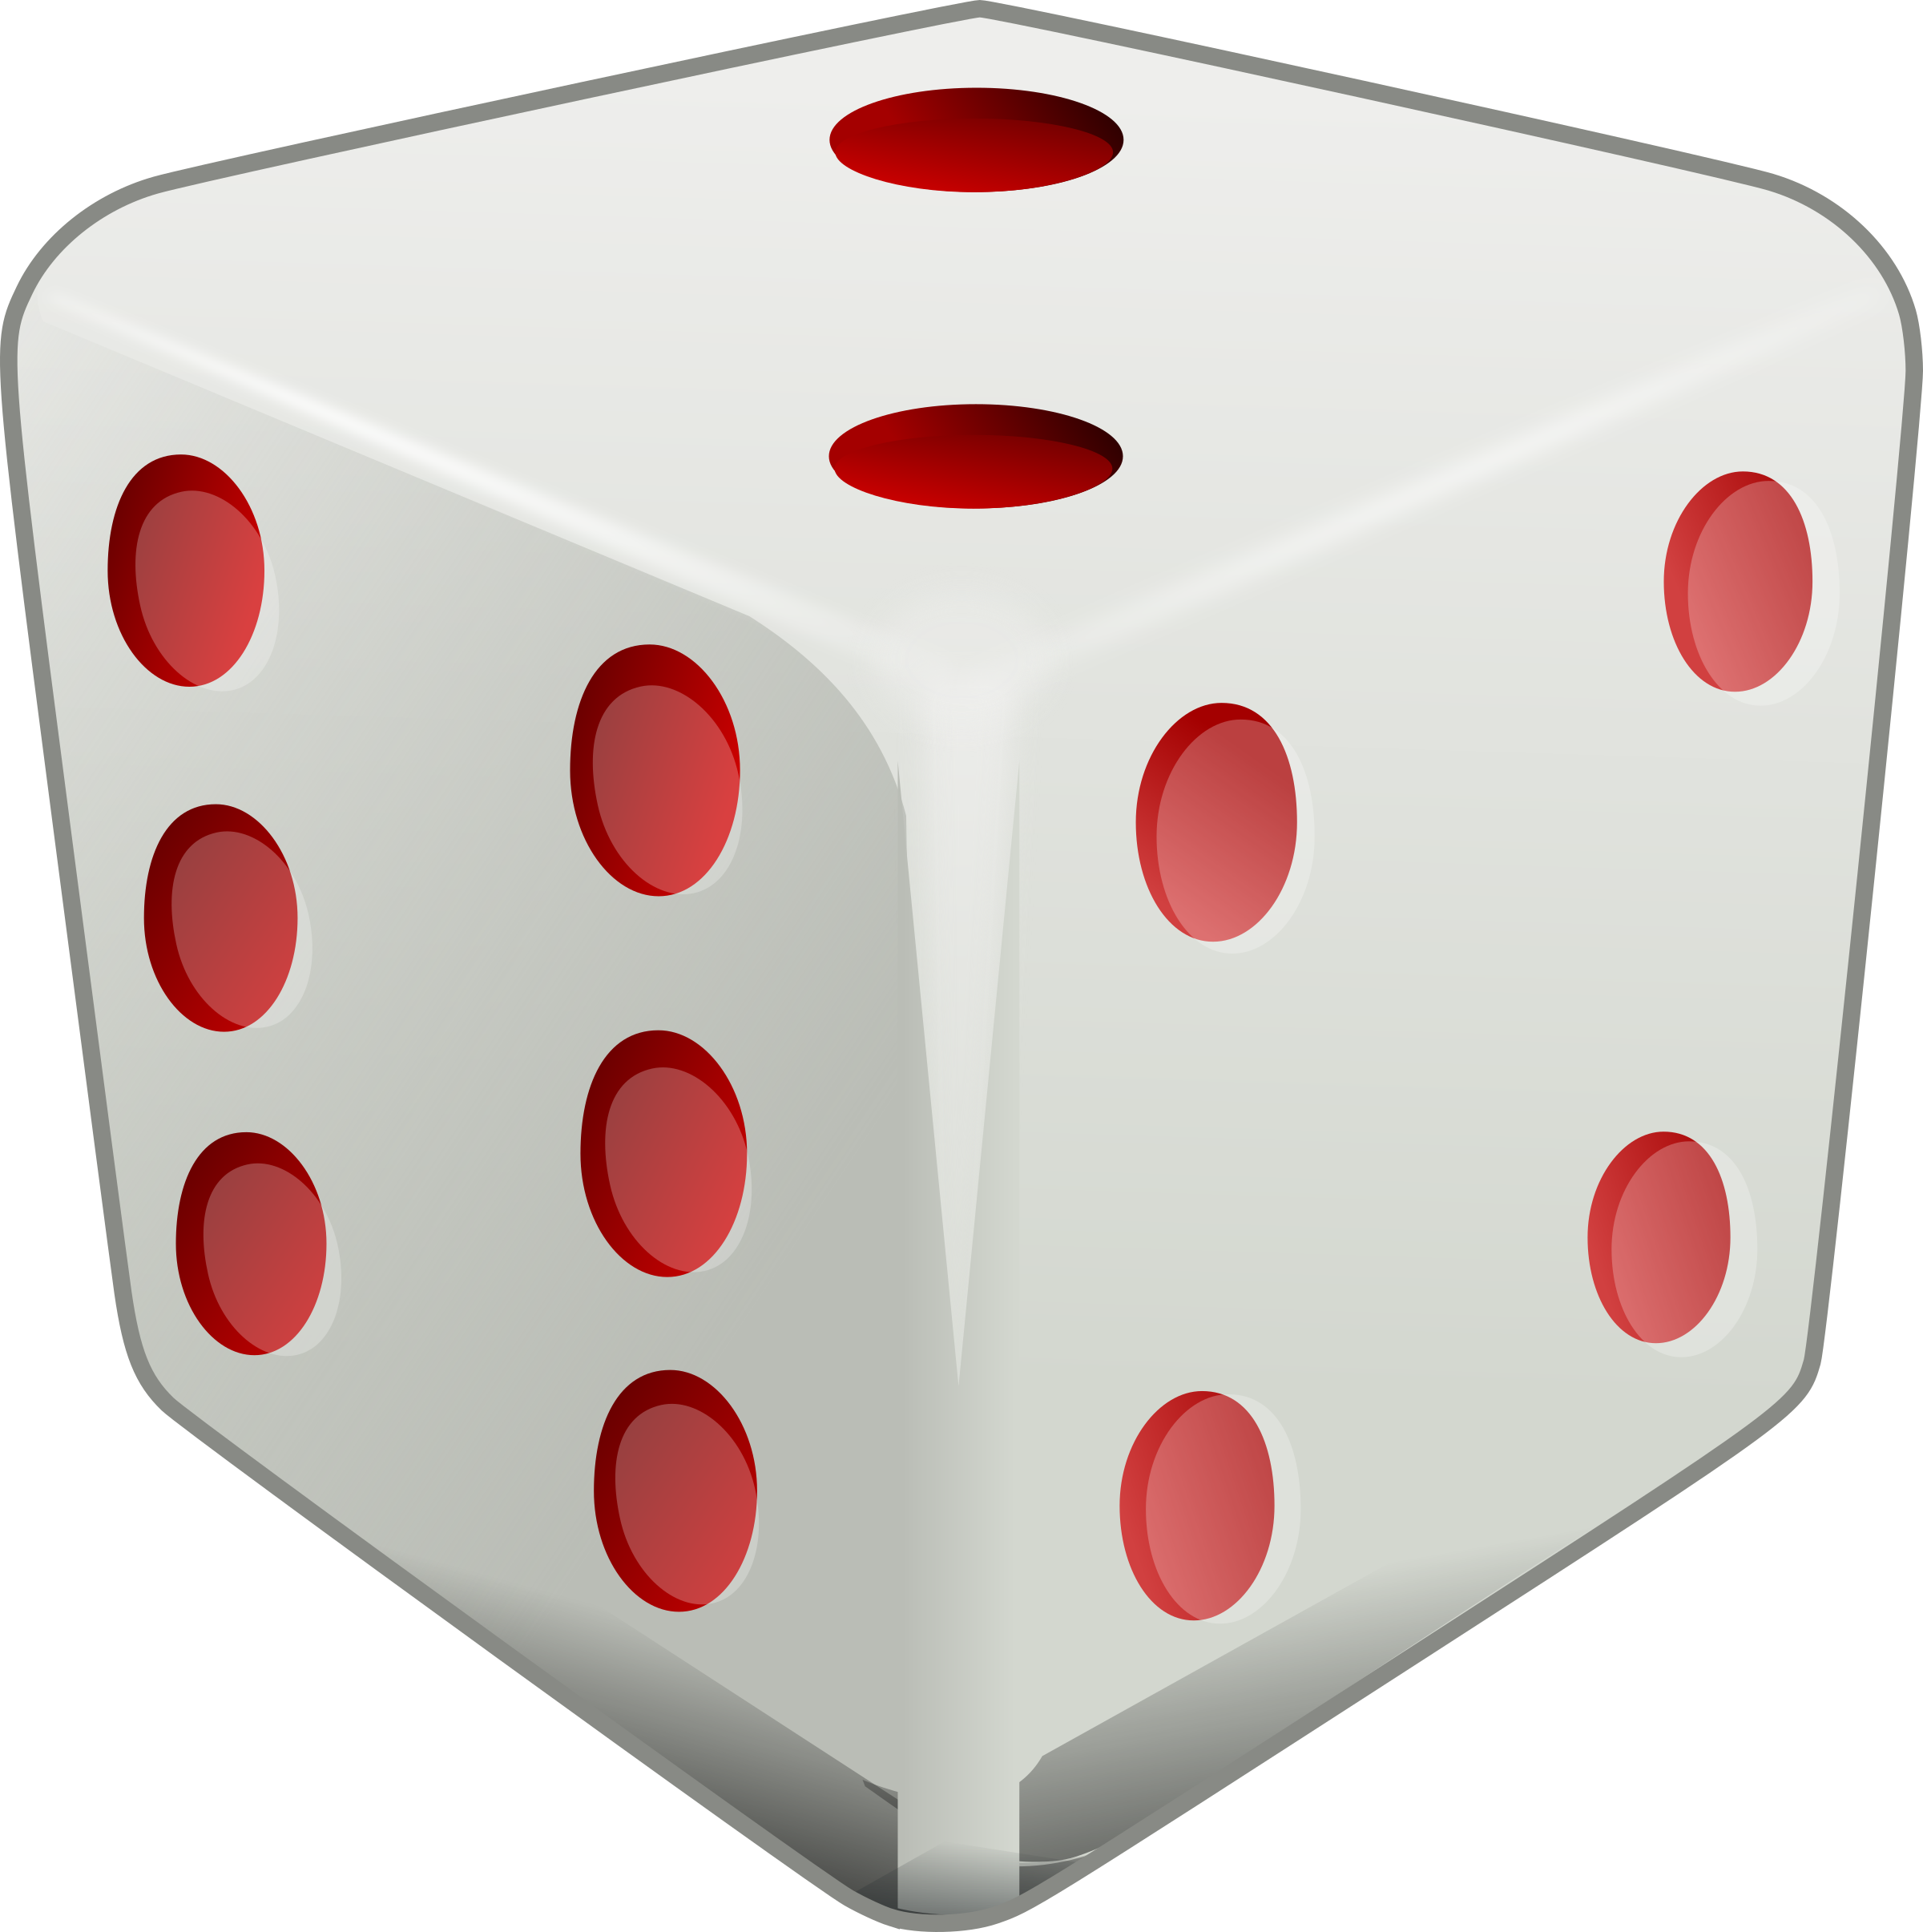 Gaming clipart roll dice. With two on top